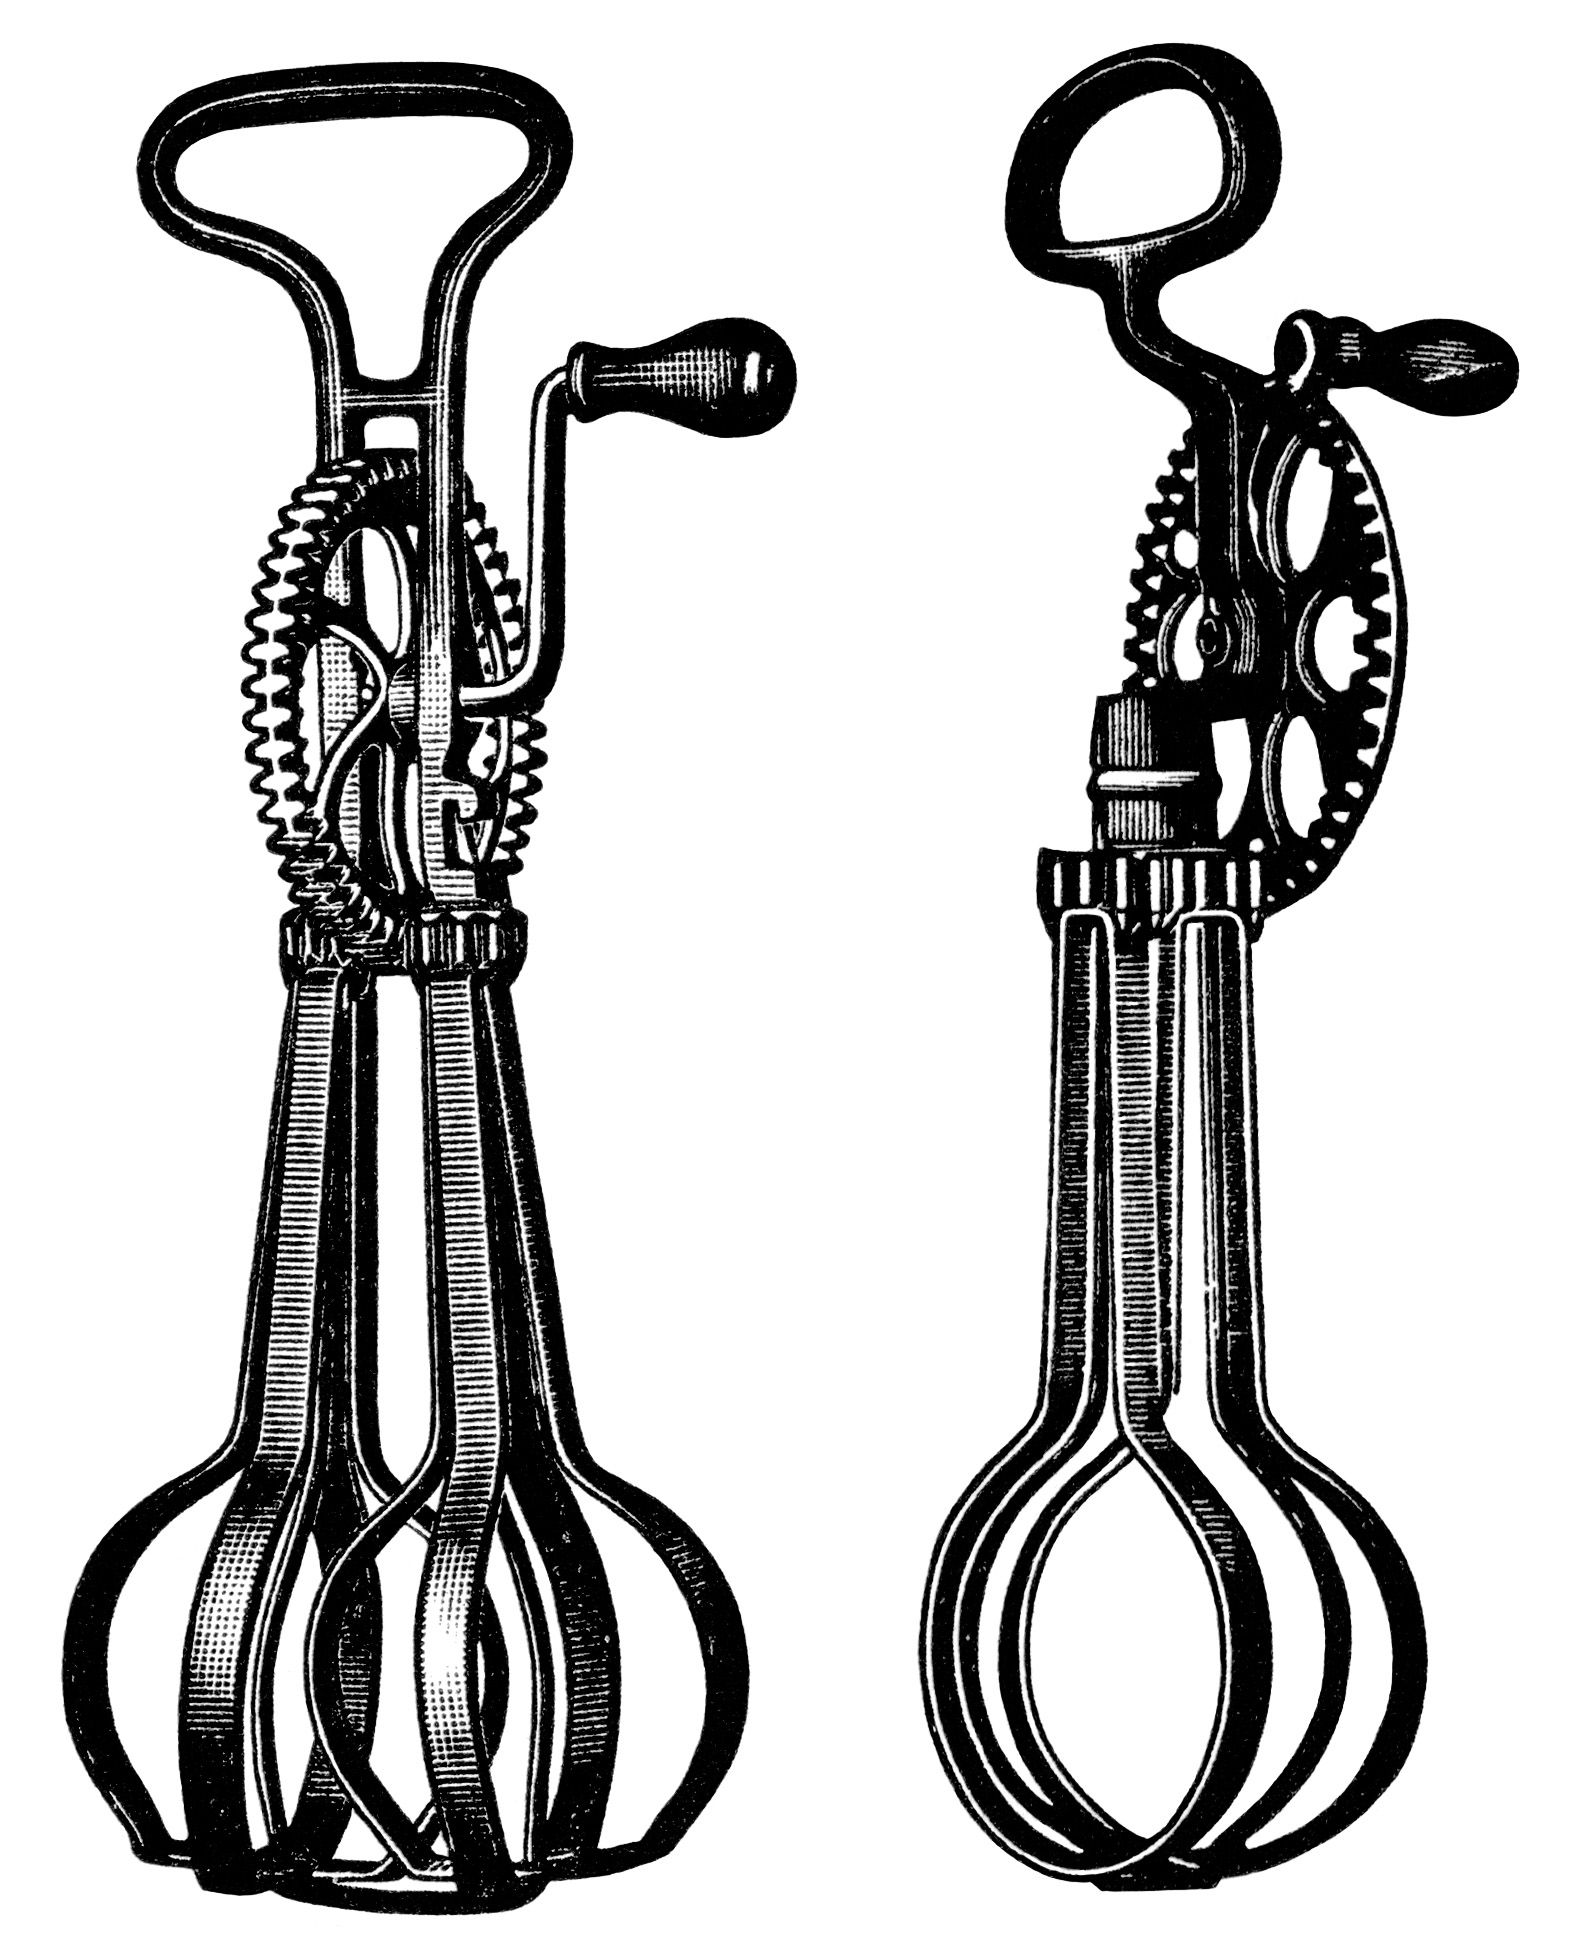 Antique Food Mixer Image Free Black And White Clip Art